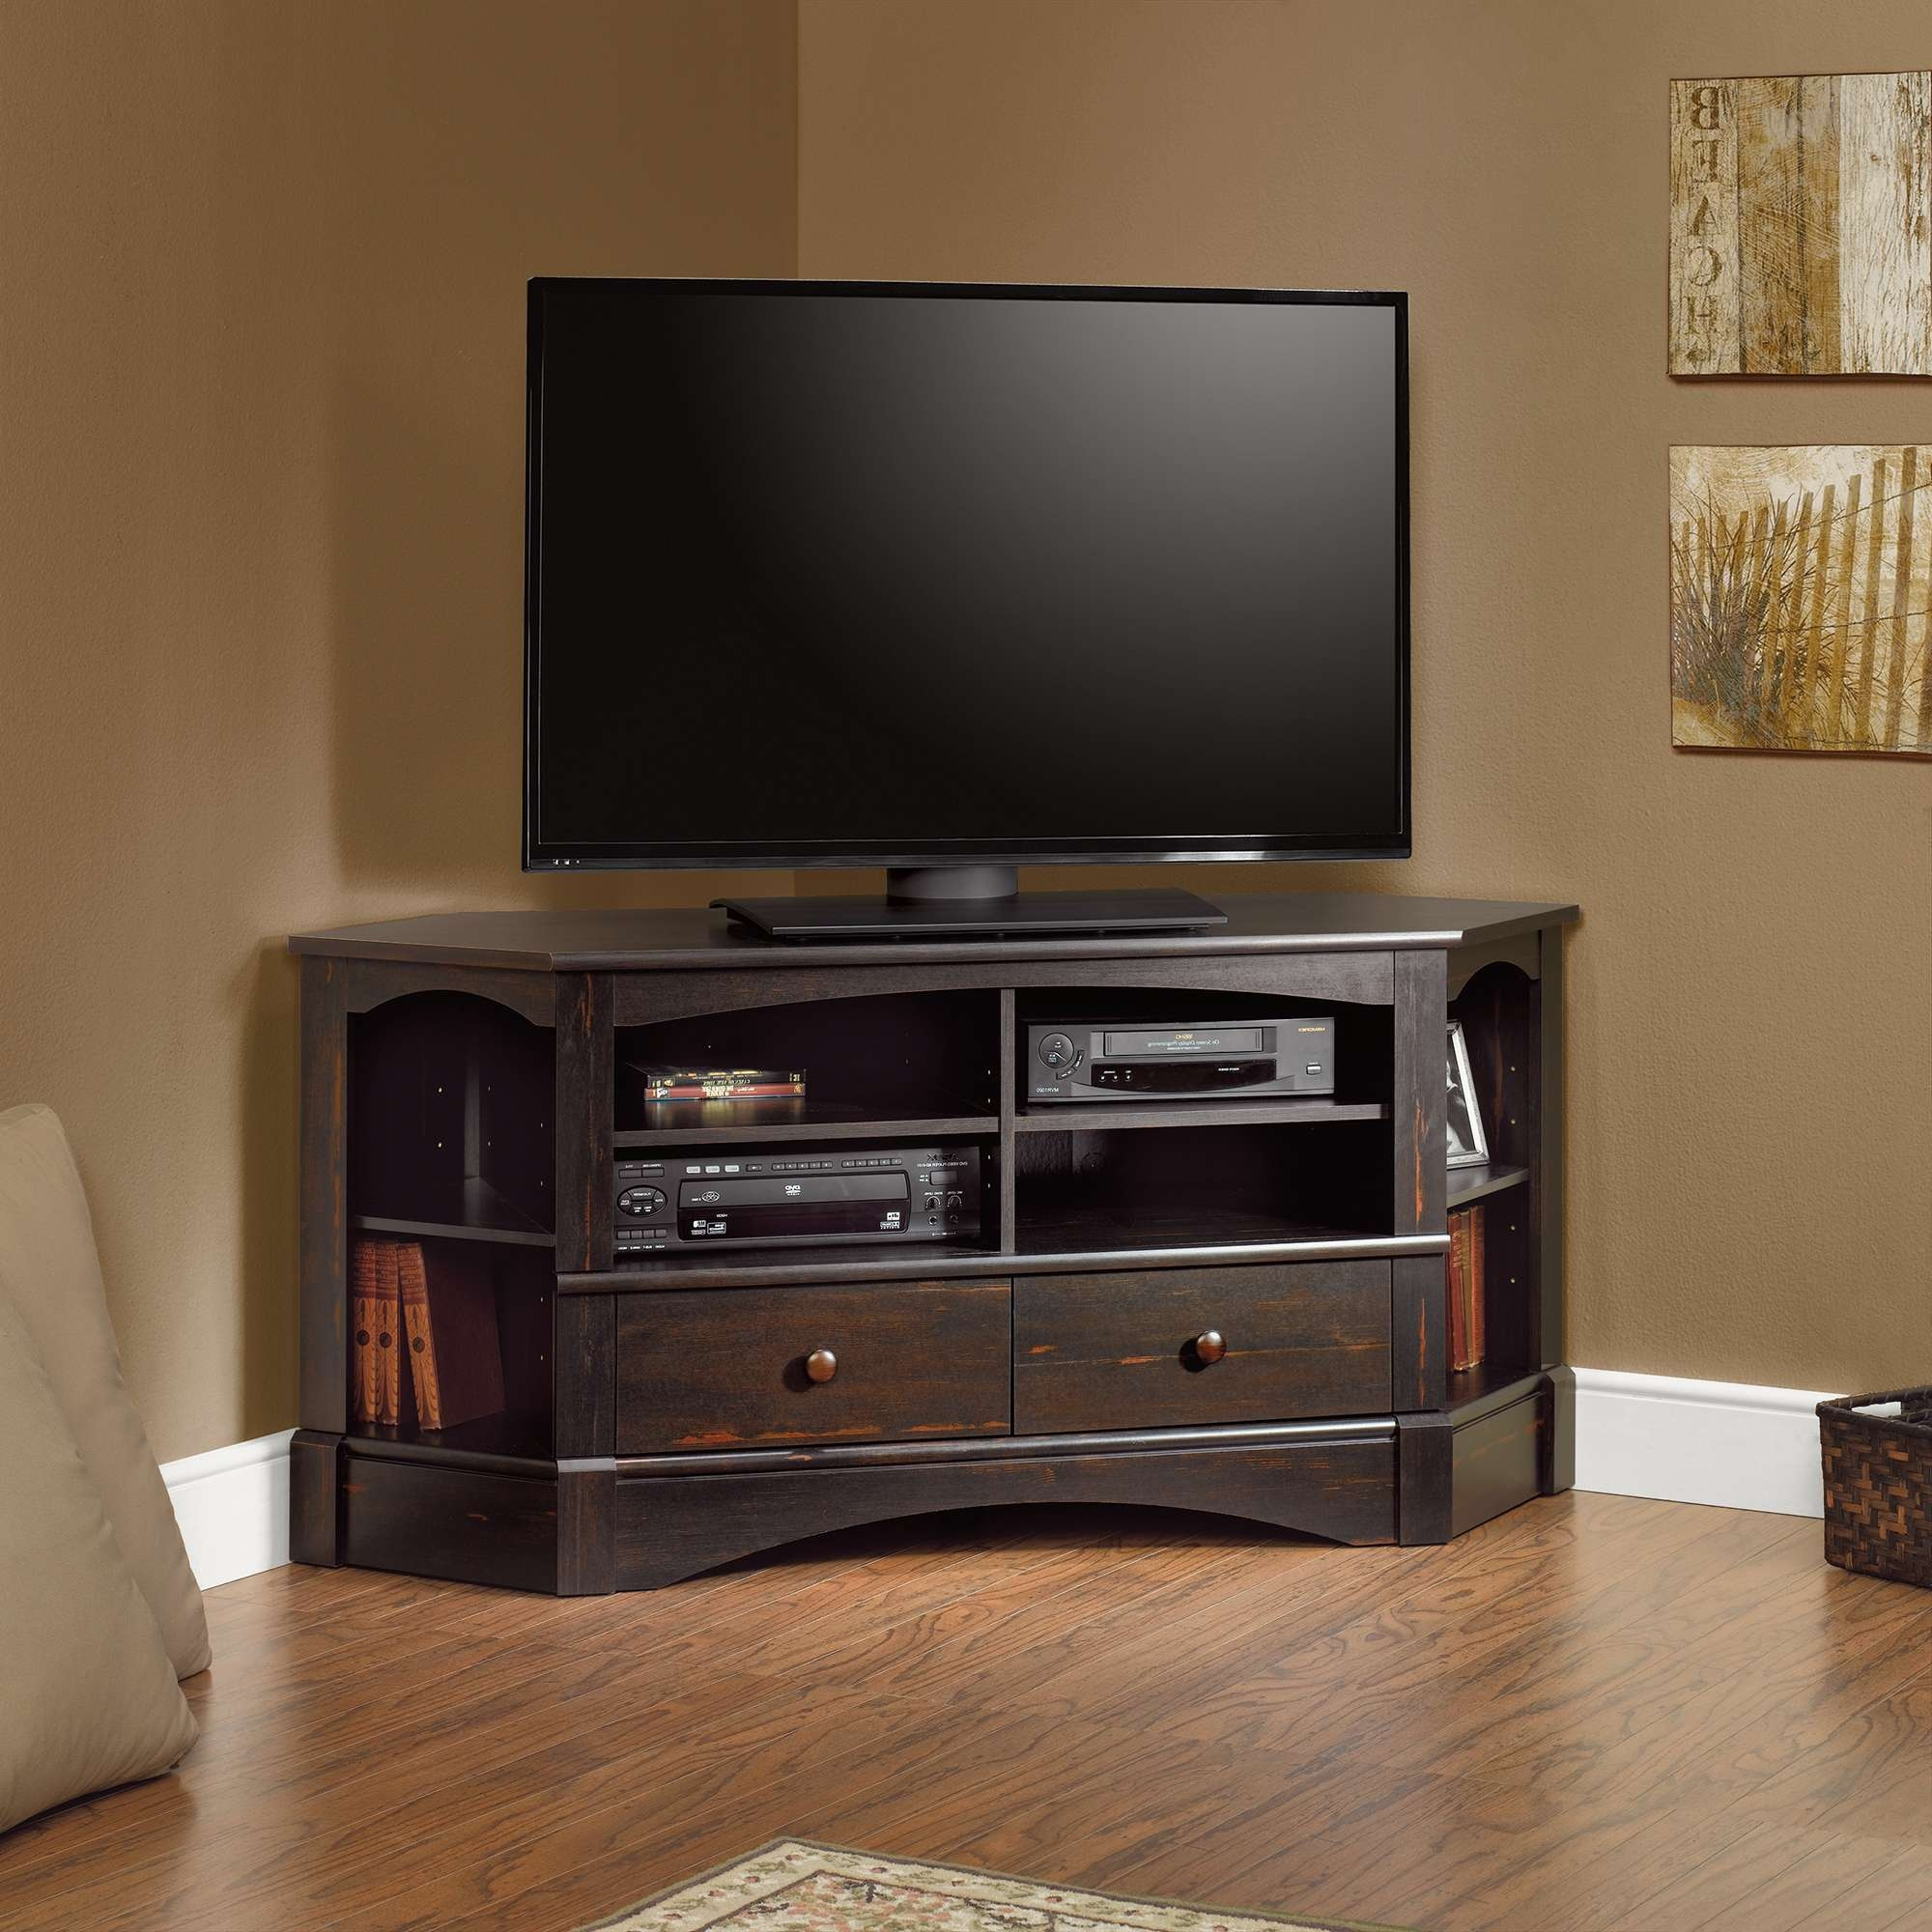 Fancy Matte Varnished Dark Oak Wood Tall Corner Tv Stand For Regarding Solid Wood Corner Tv Stands (View 7 of 20)